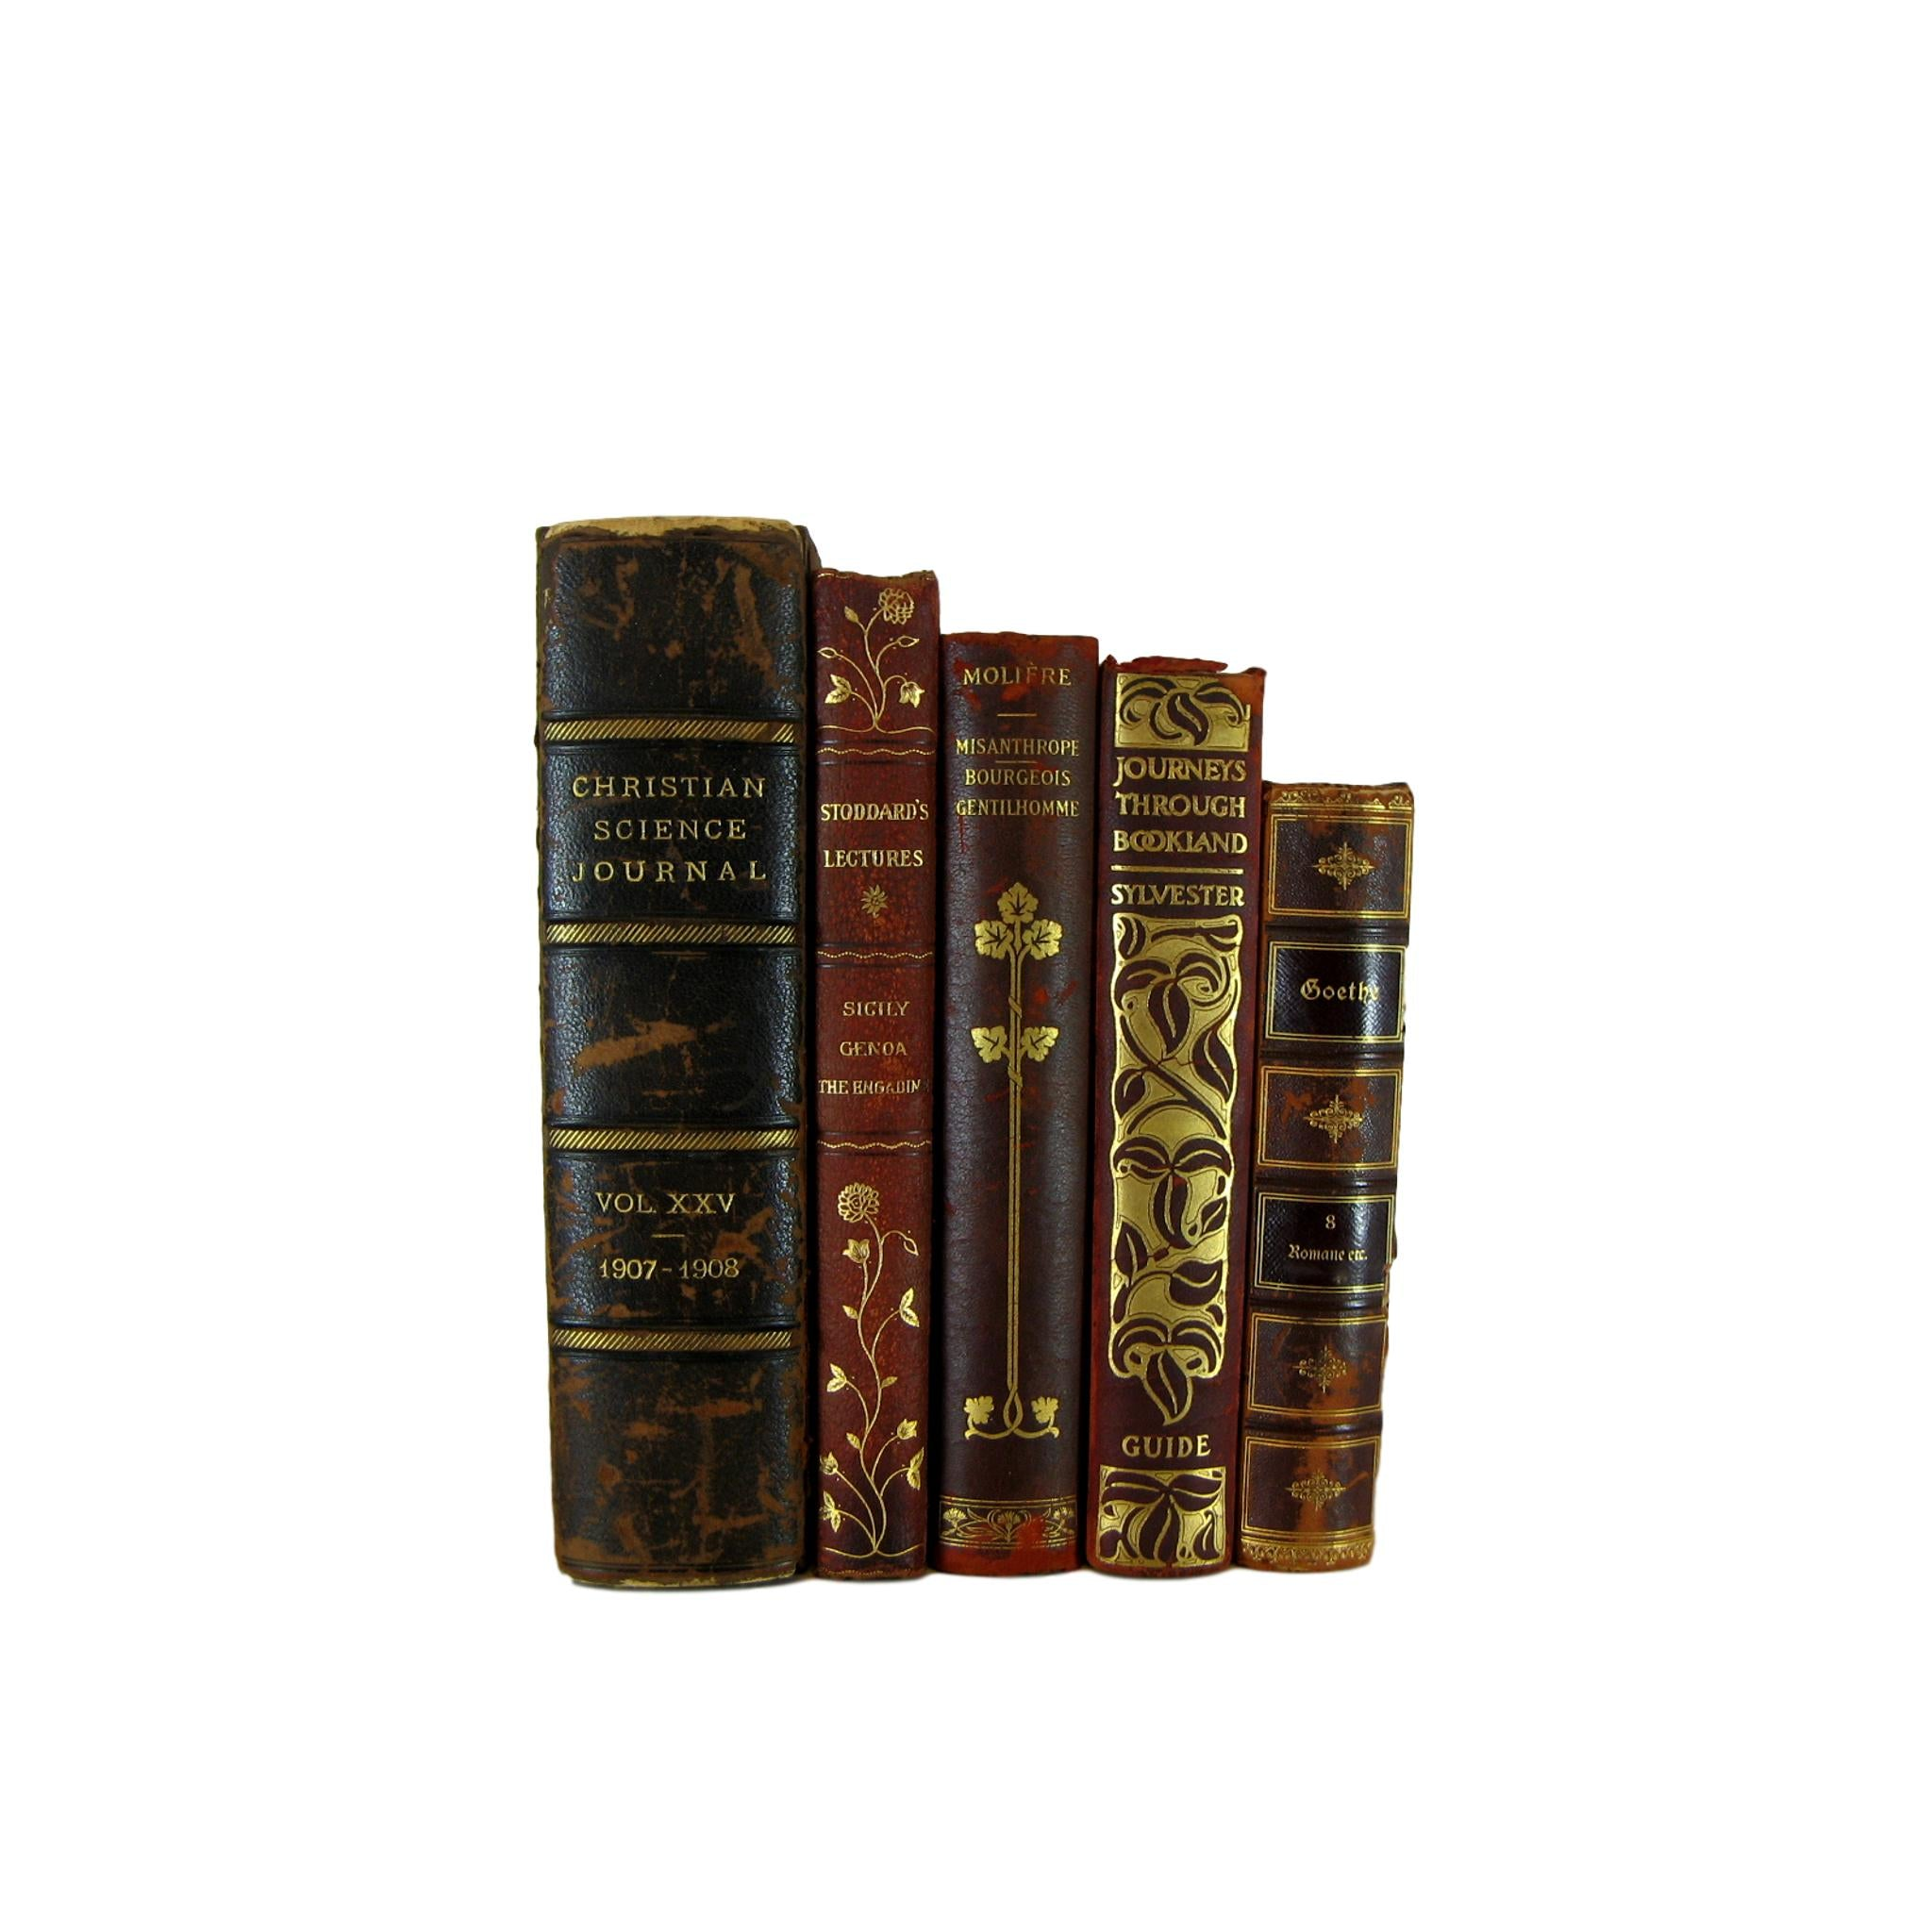 Leather Decorative  Books for Mantel Decor, S/5 - Decades of Vintage